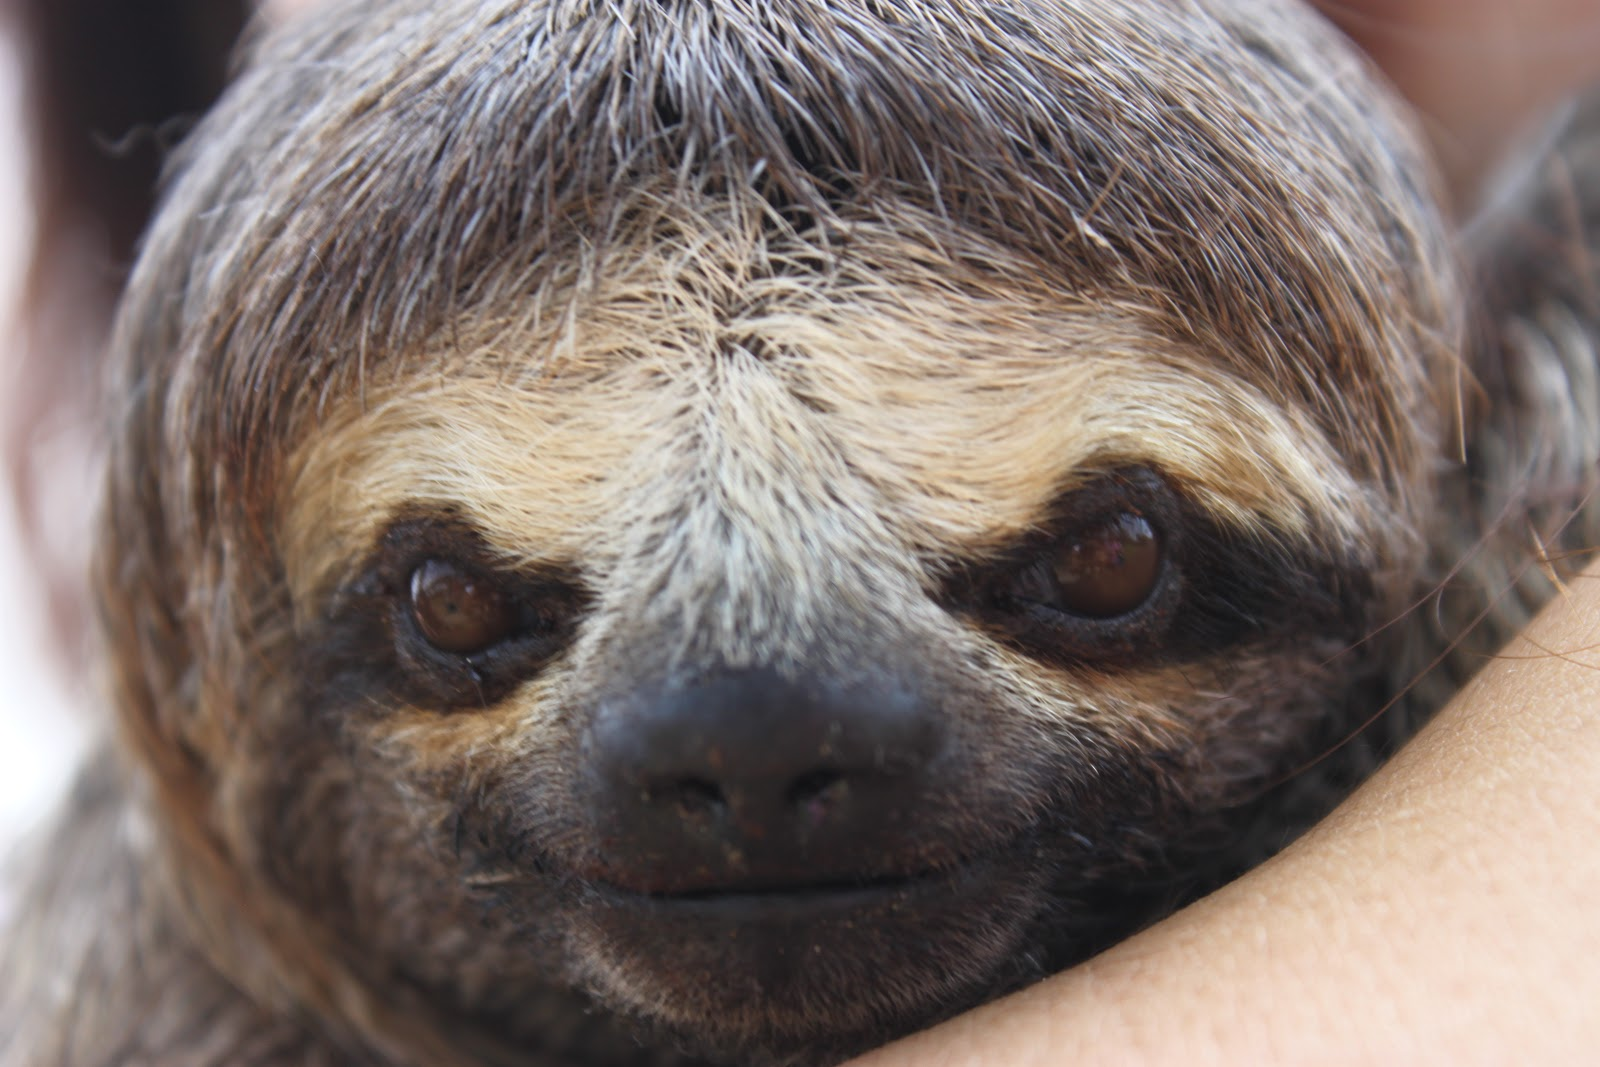 Sloths Smiling With Teeth